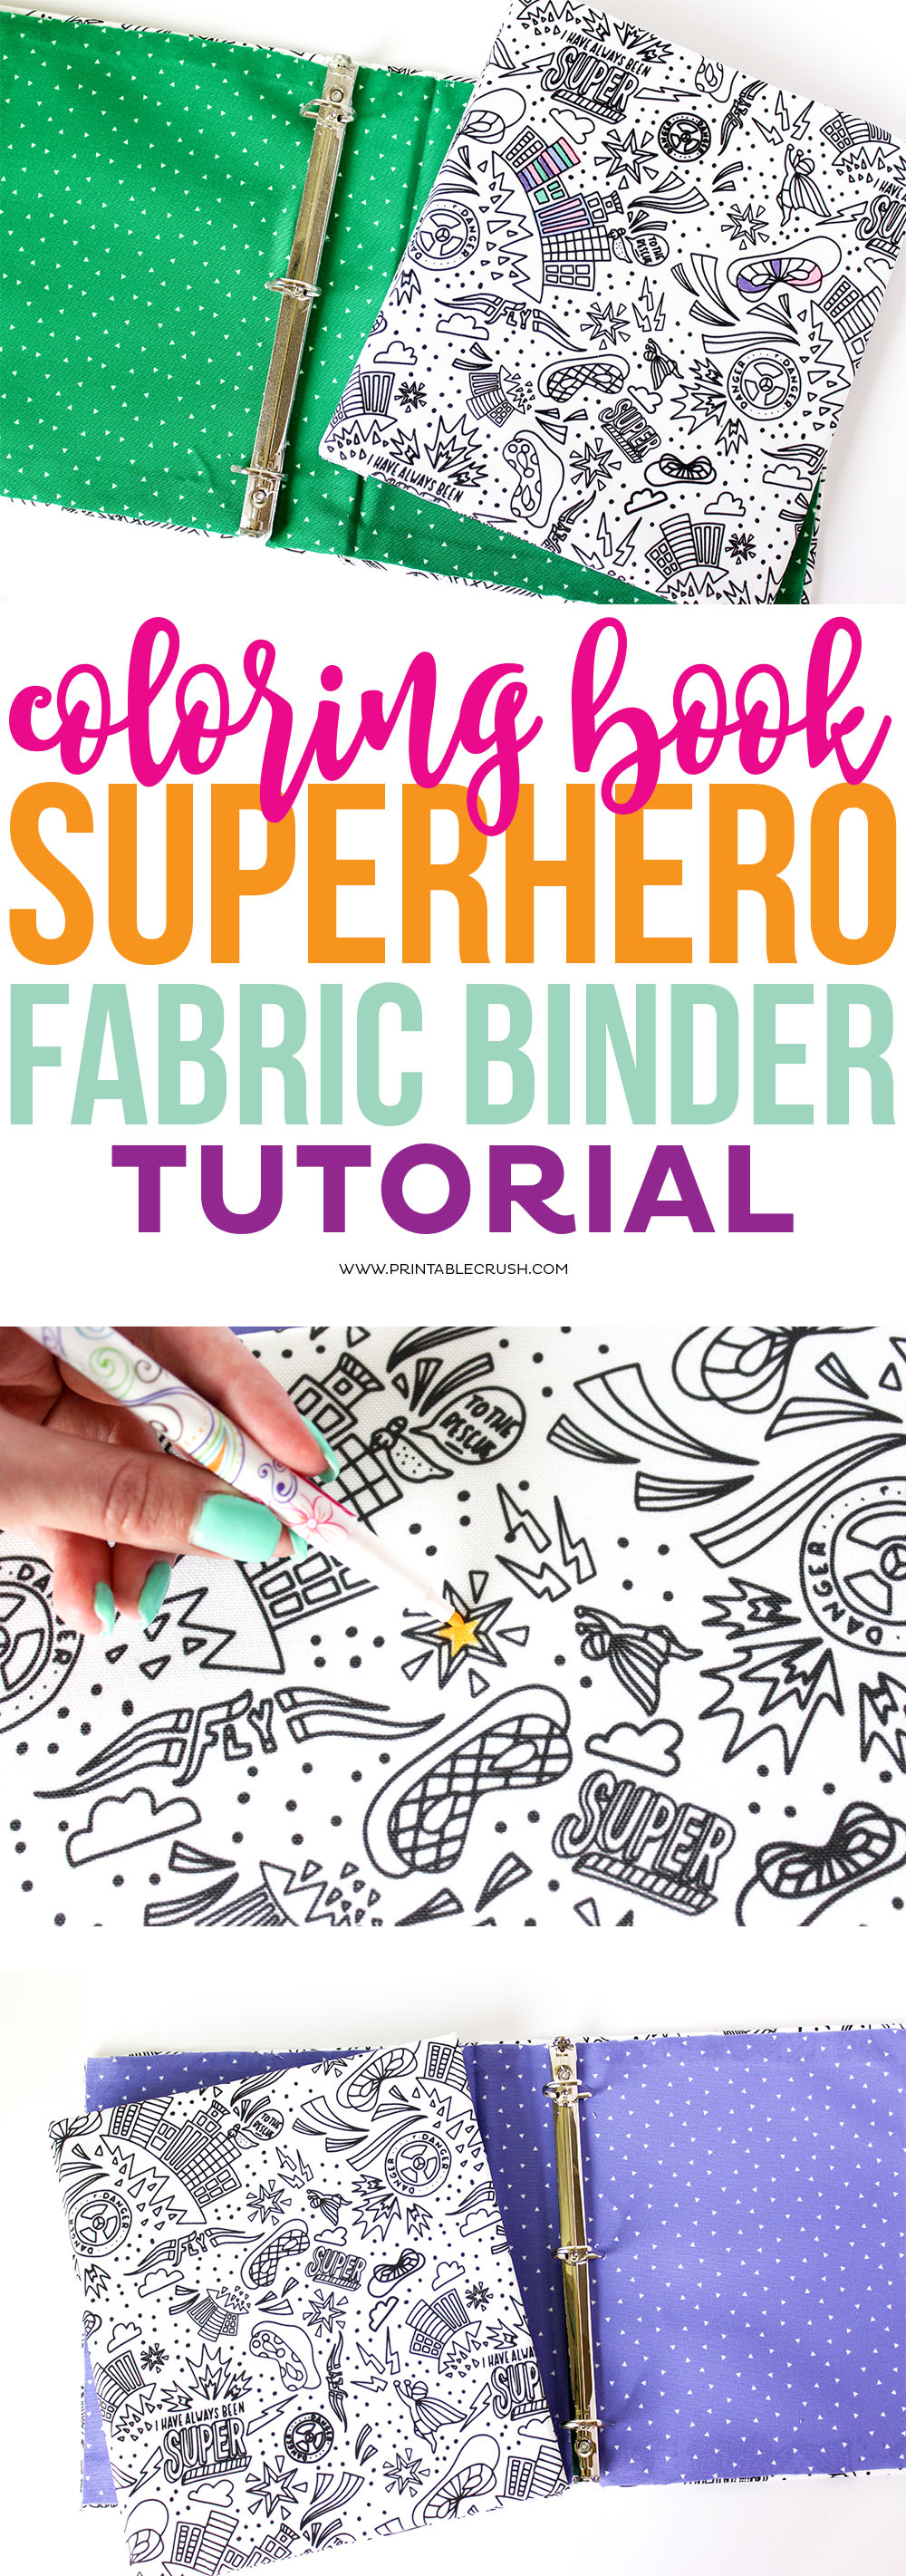 This Coloring Book Superhero Fabric Binder Tutorial Is Great For Boys Or Girls They